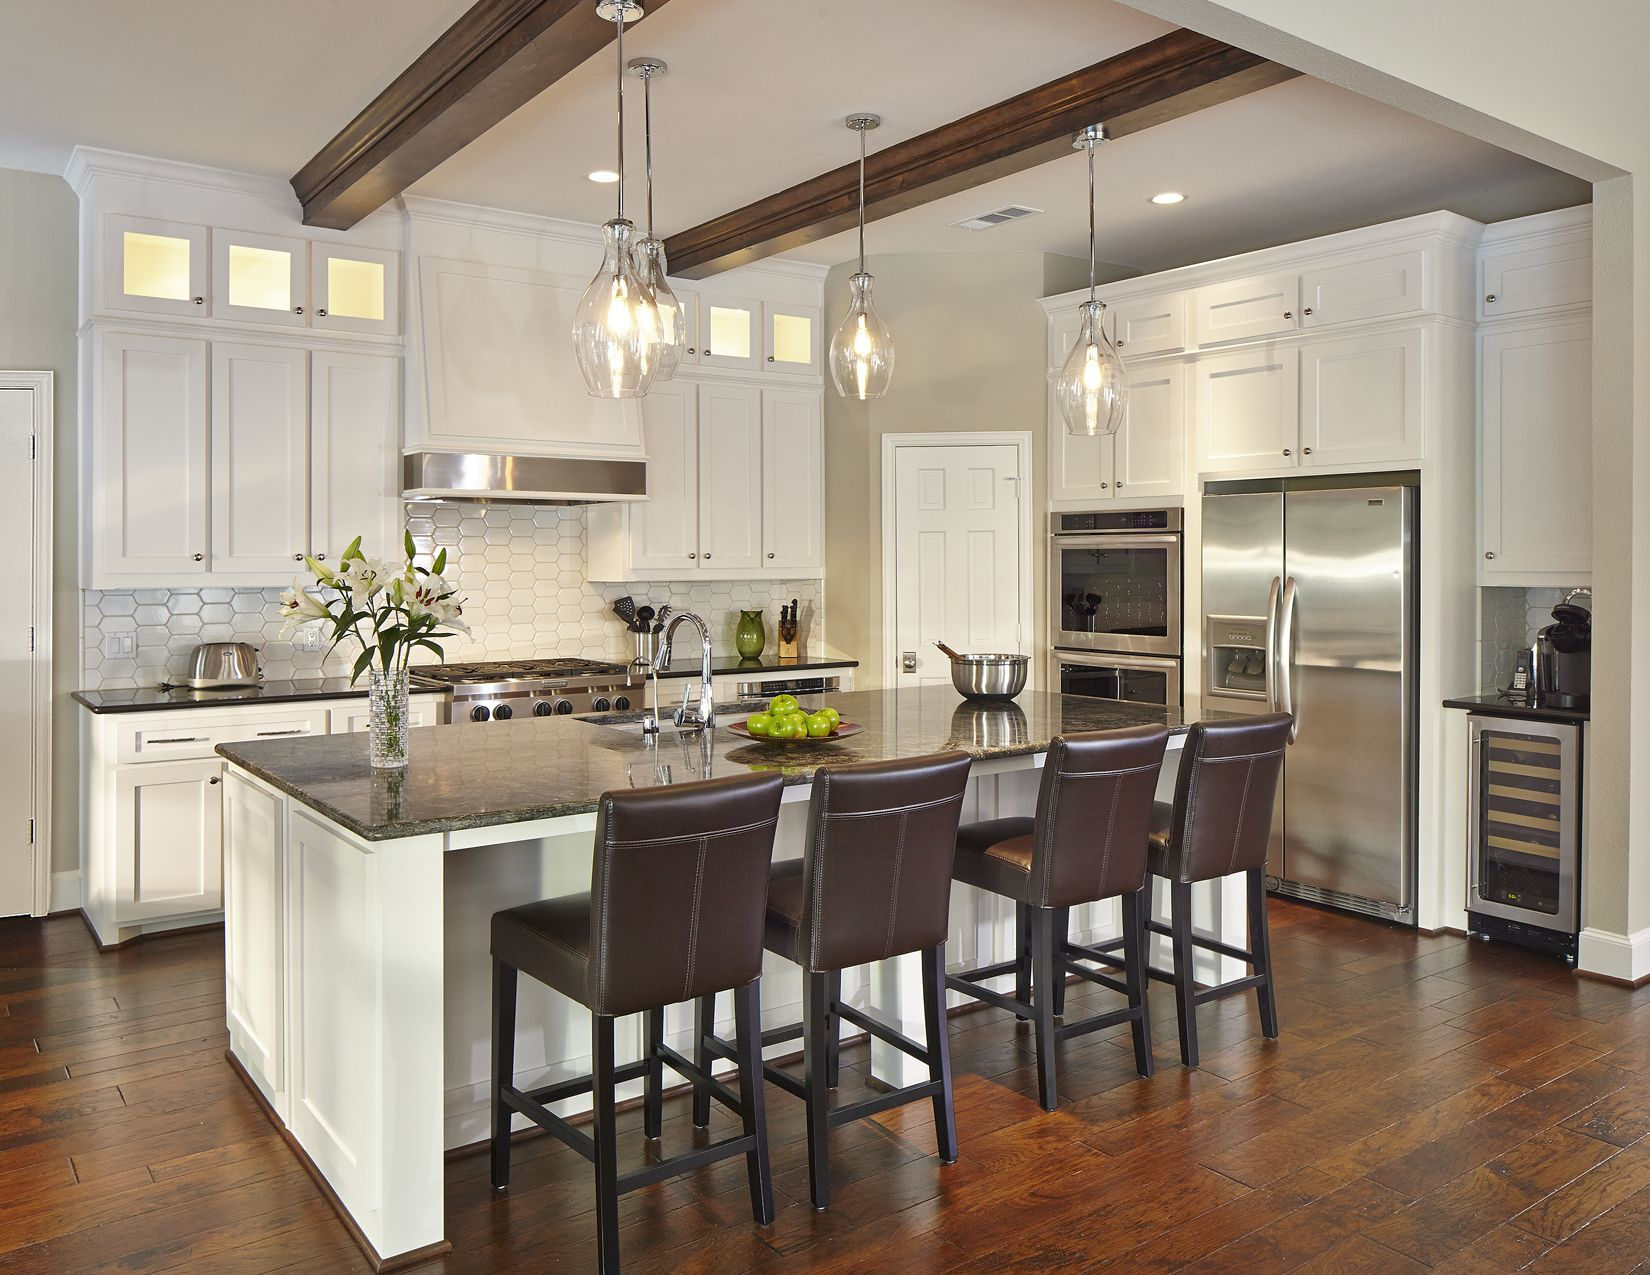 Dallas Kitchen Design Enchanting Usi Remodeling  2014 Nari Dallas Contractor Of The Year  Kitchen Design Decoration